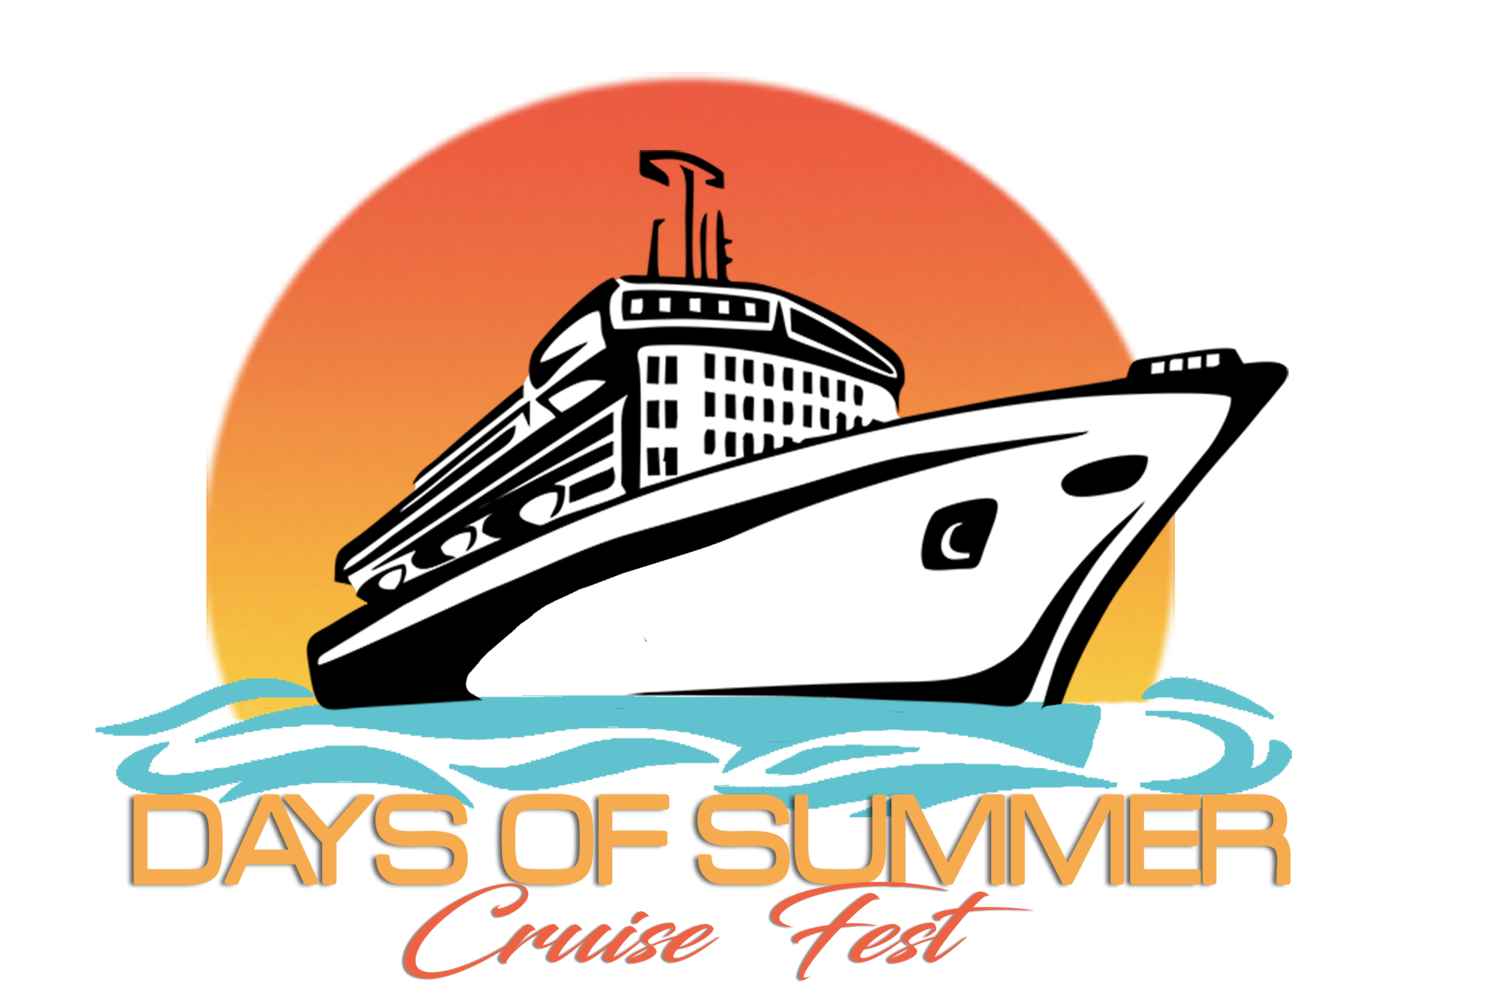 FAQ — Days of Summer Cruise